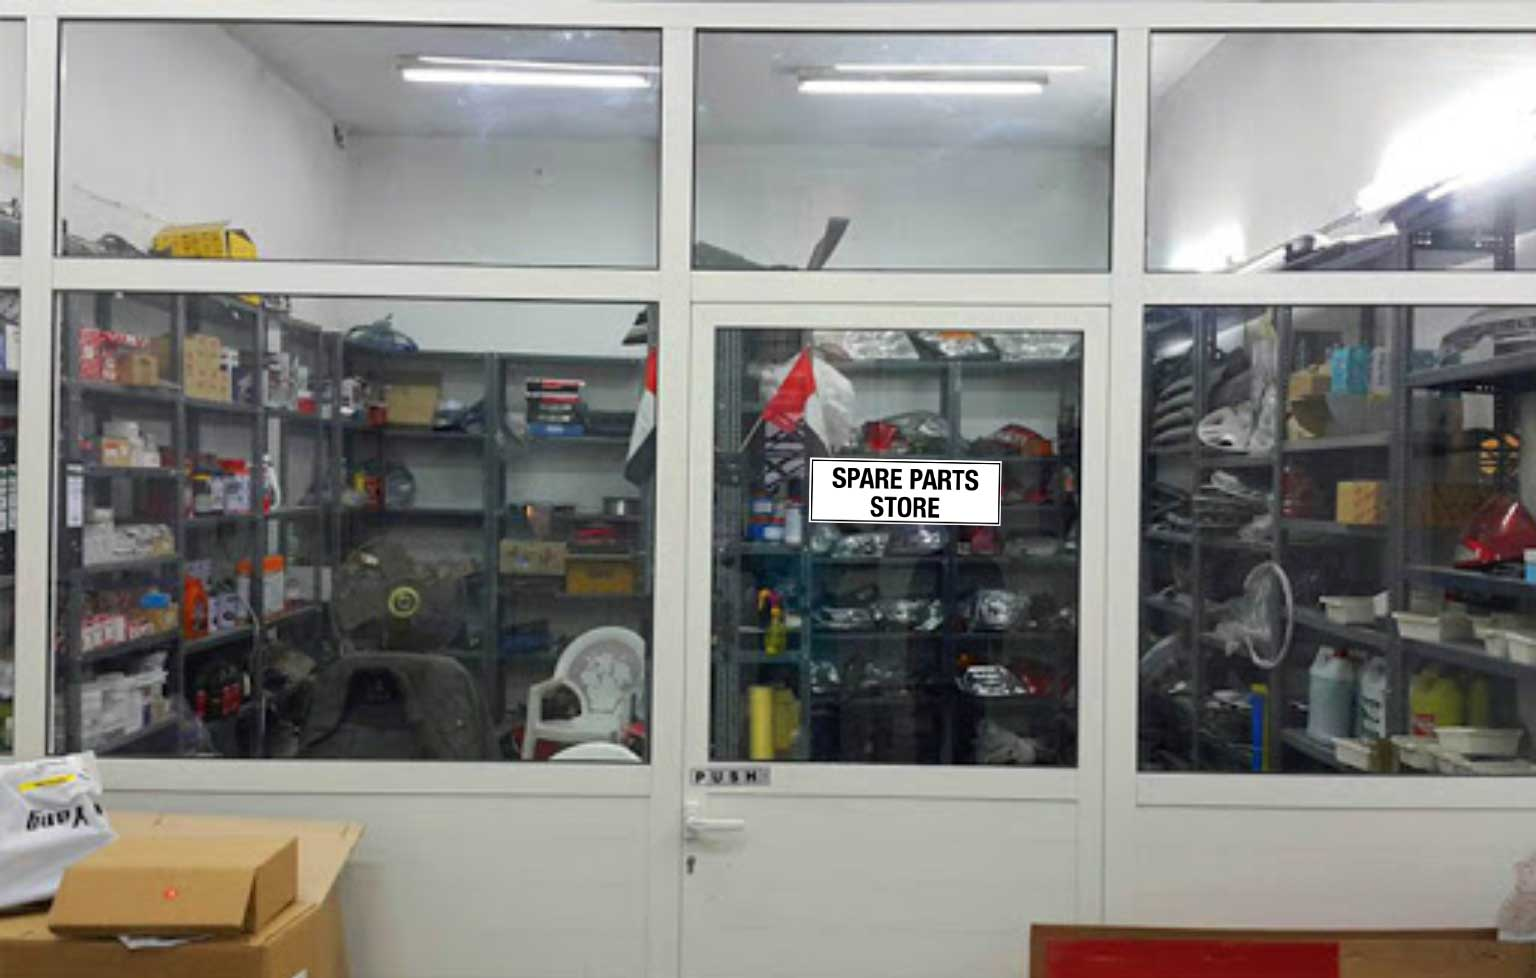 https://nplabel.com/images/products_gallery_images/160177B-Spare-parts-Store.jpg